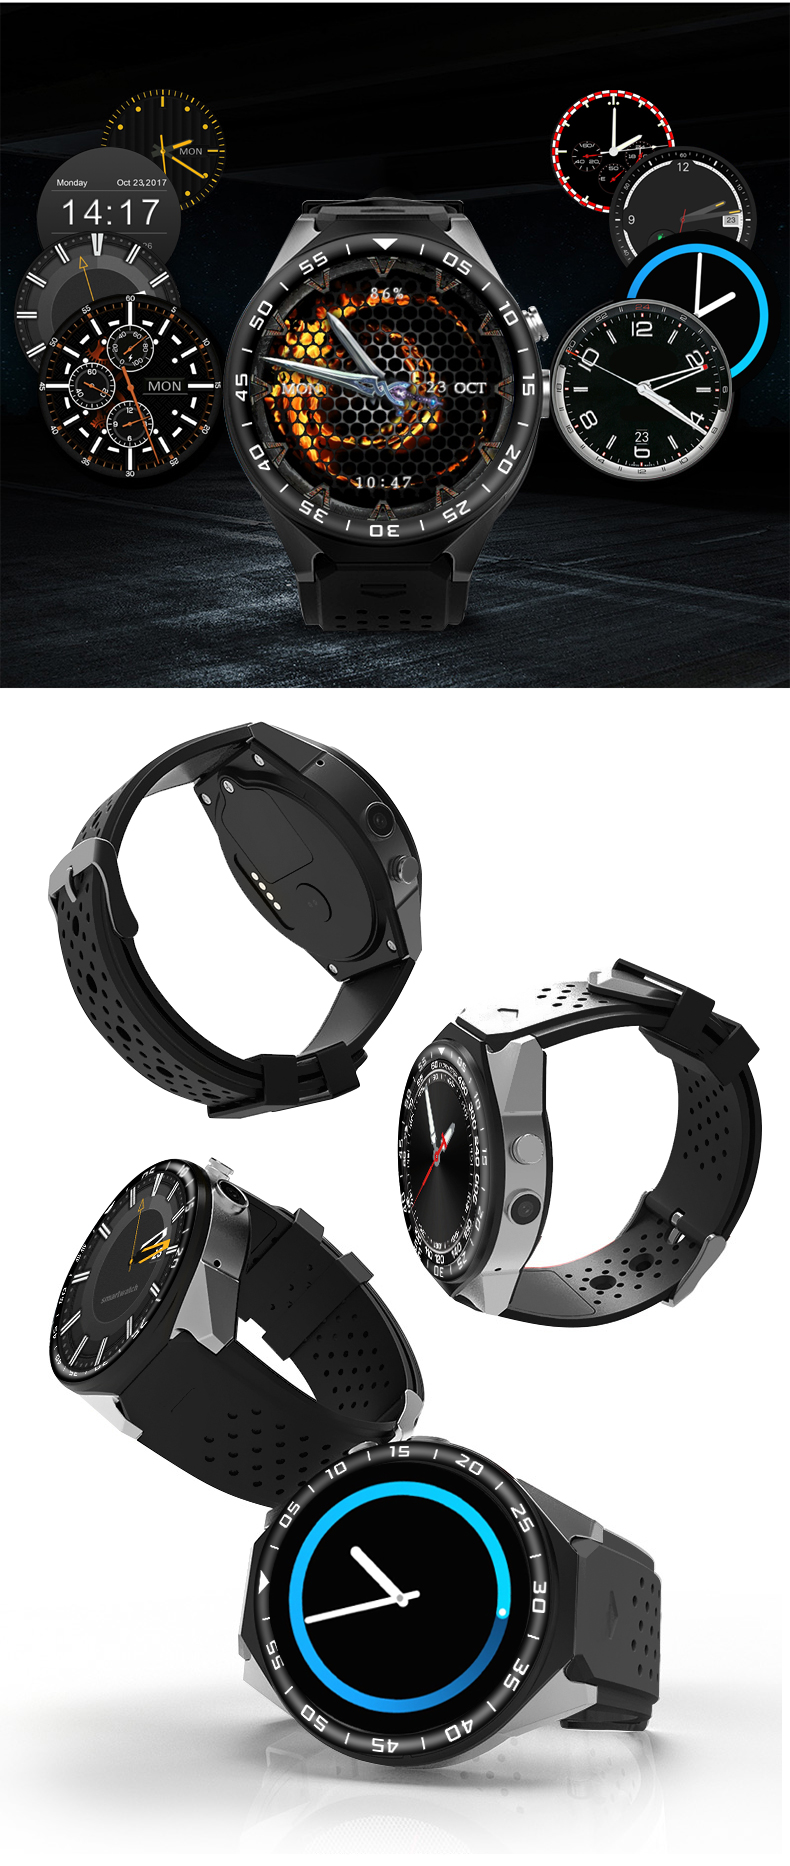 3G Android Smart Watch Phone Heart Rate Monitor Touch Screen Support GPS Wifi SIM Camera App silver 3 11